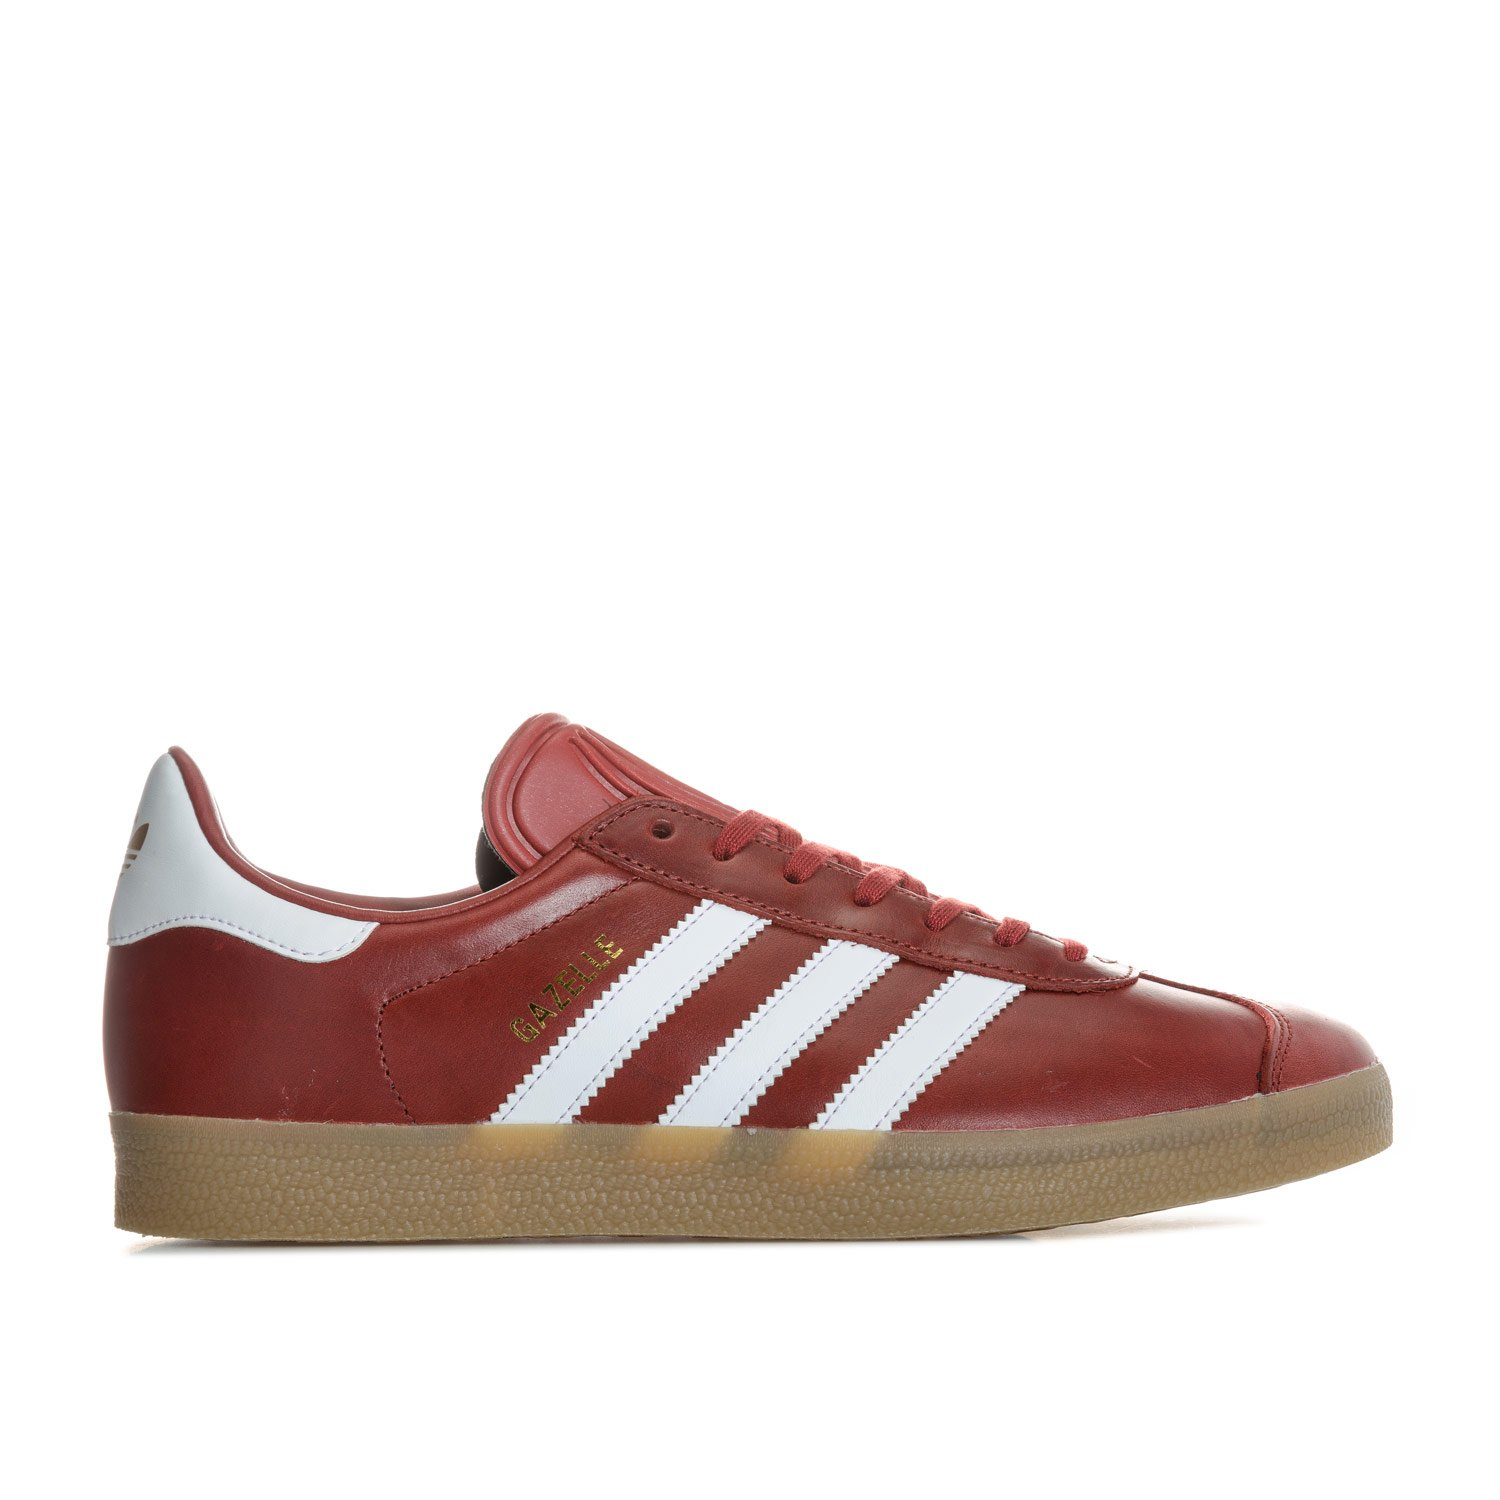 adidas Originals Men's Gazelle Trainers Mystery US7.5 Red by adidas Originals